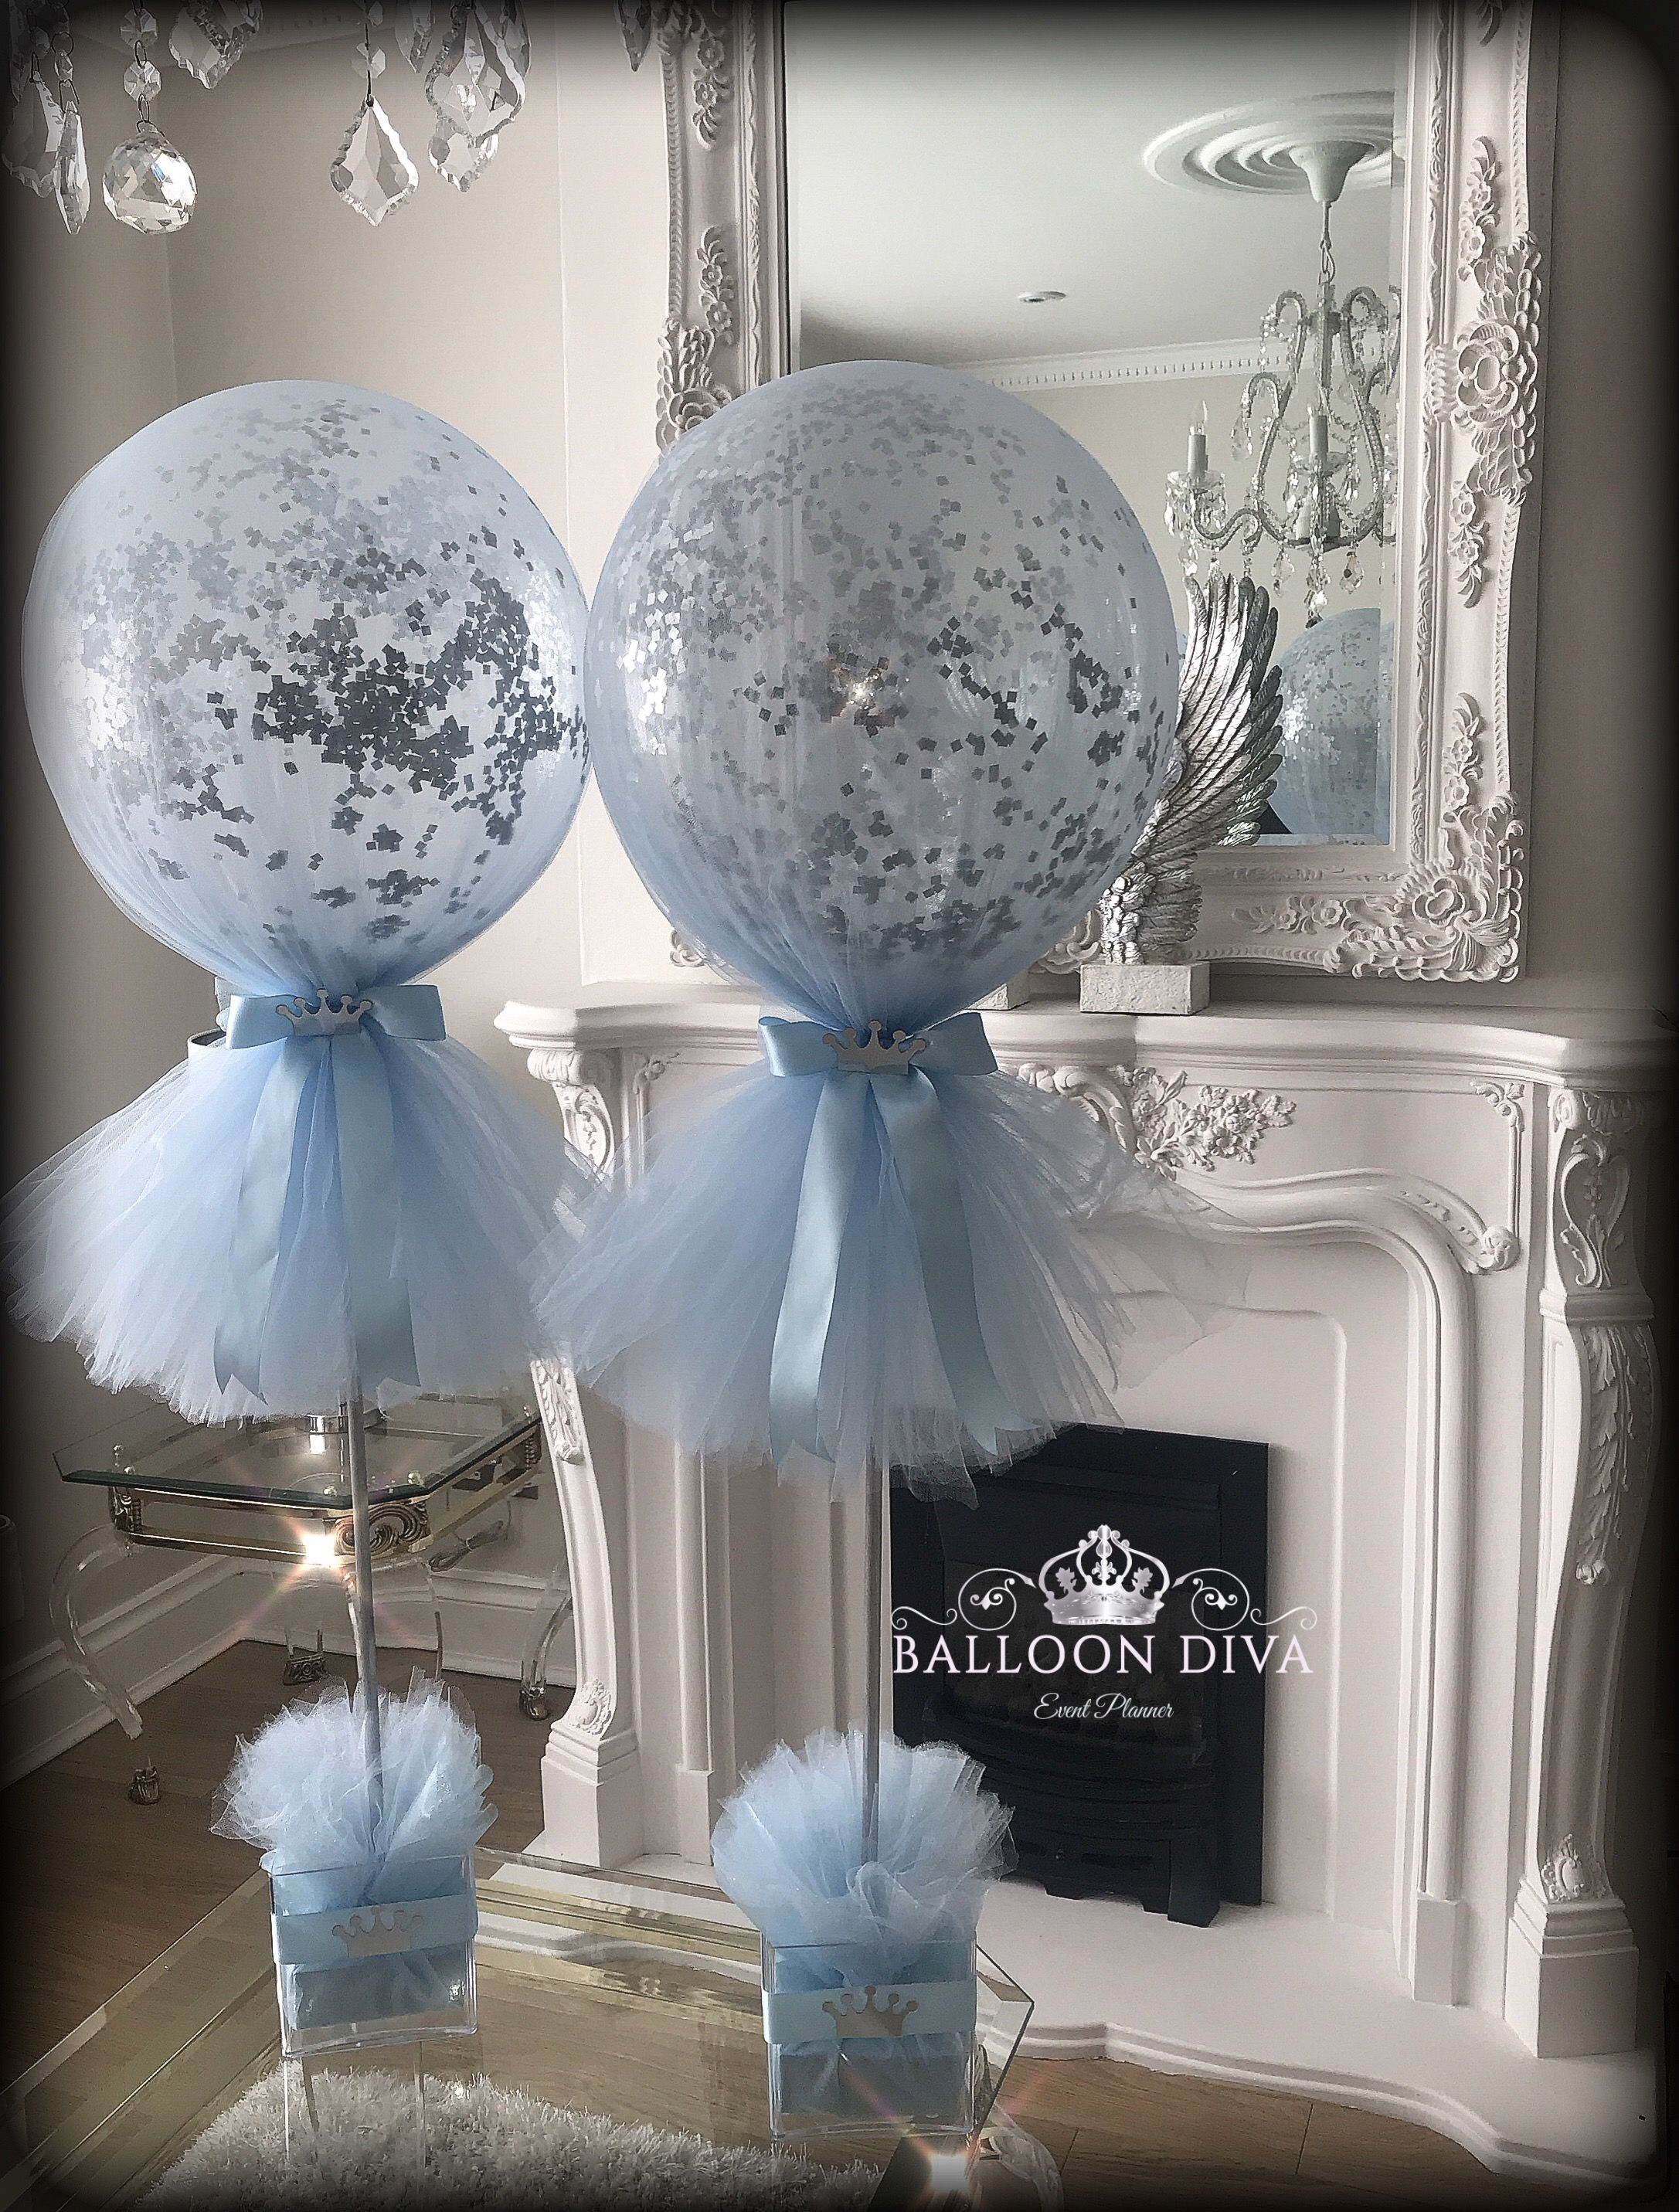 Pin By Nicole On Let S Party Baby Shower Balloons Baby Shower Centerpieces Baby Bear Baby Shower